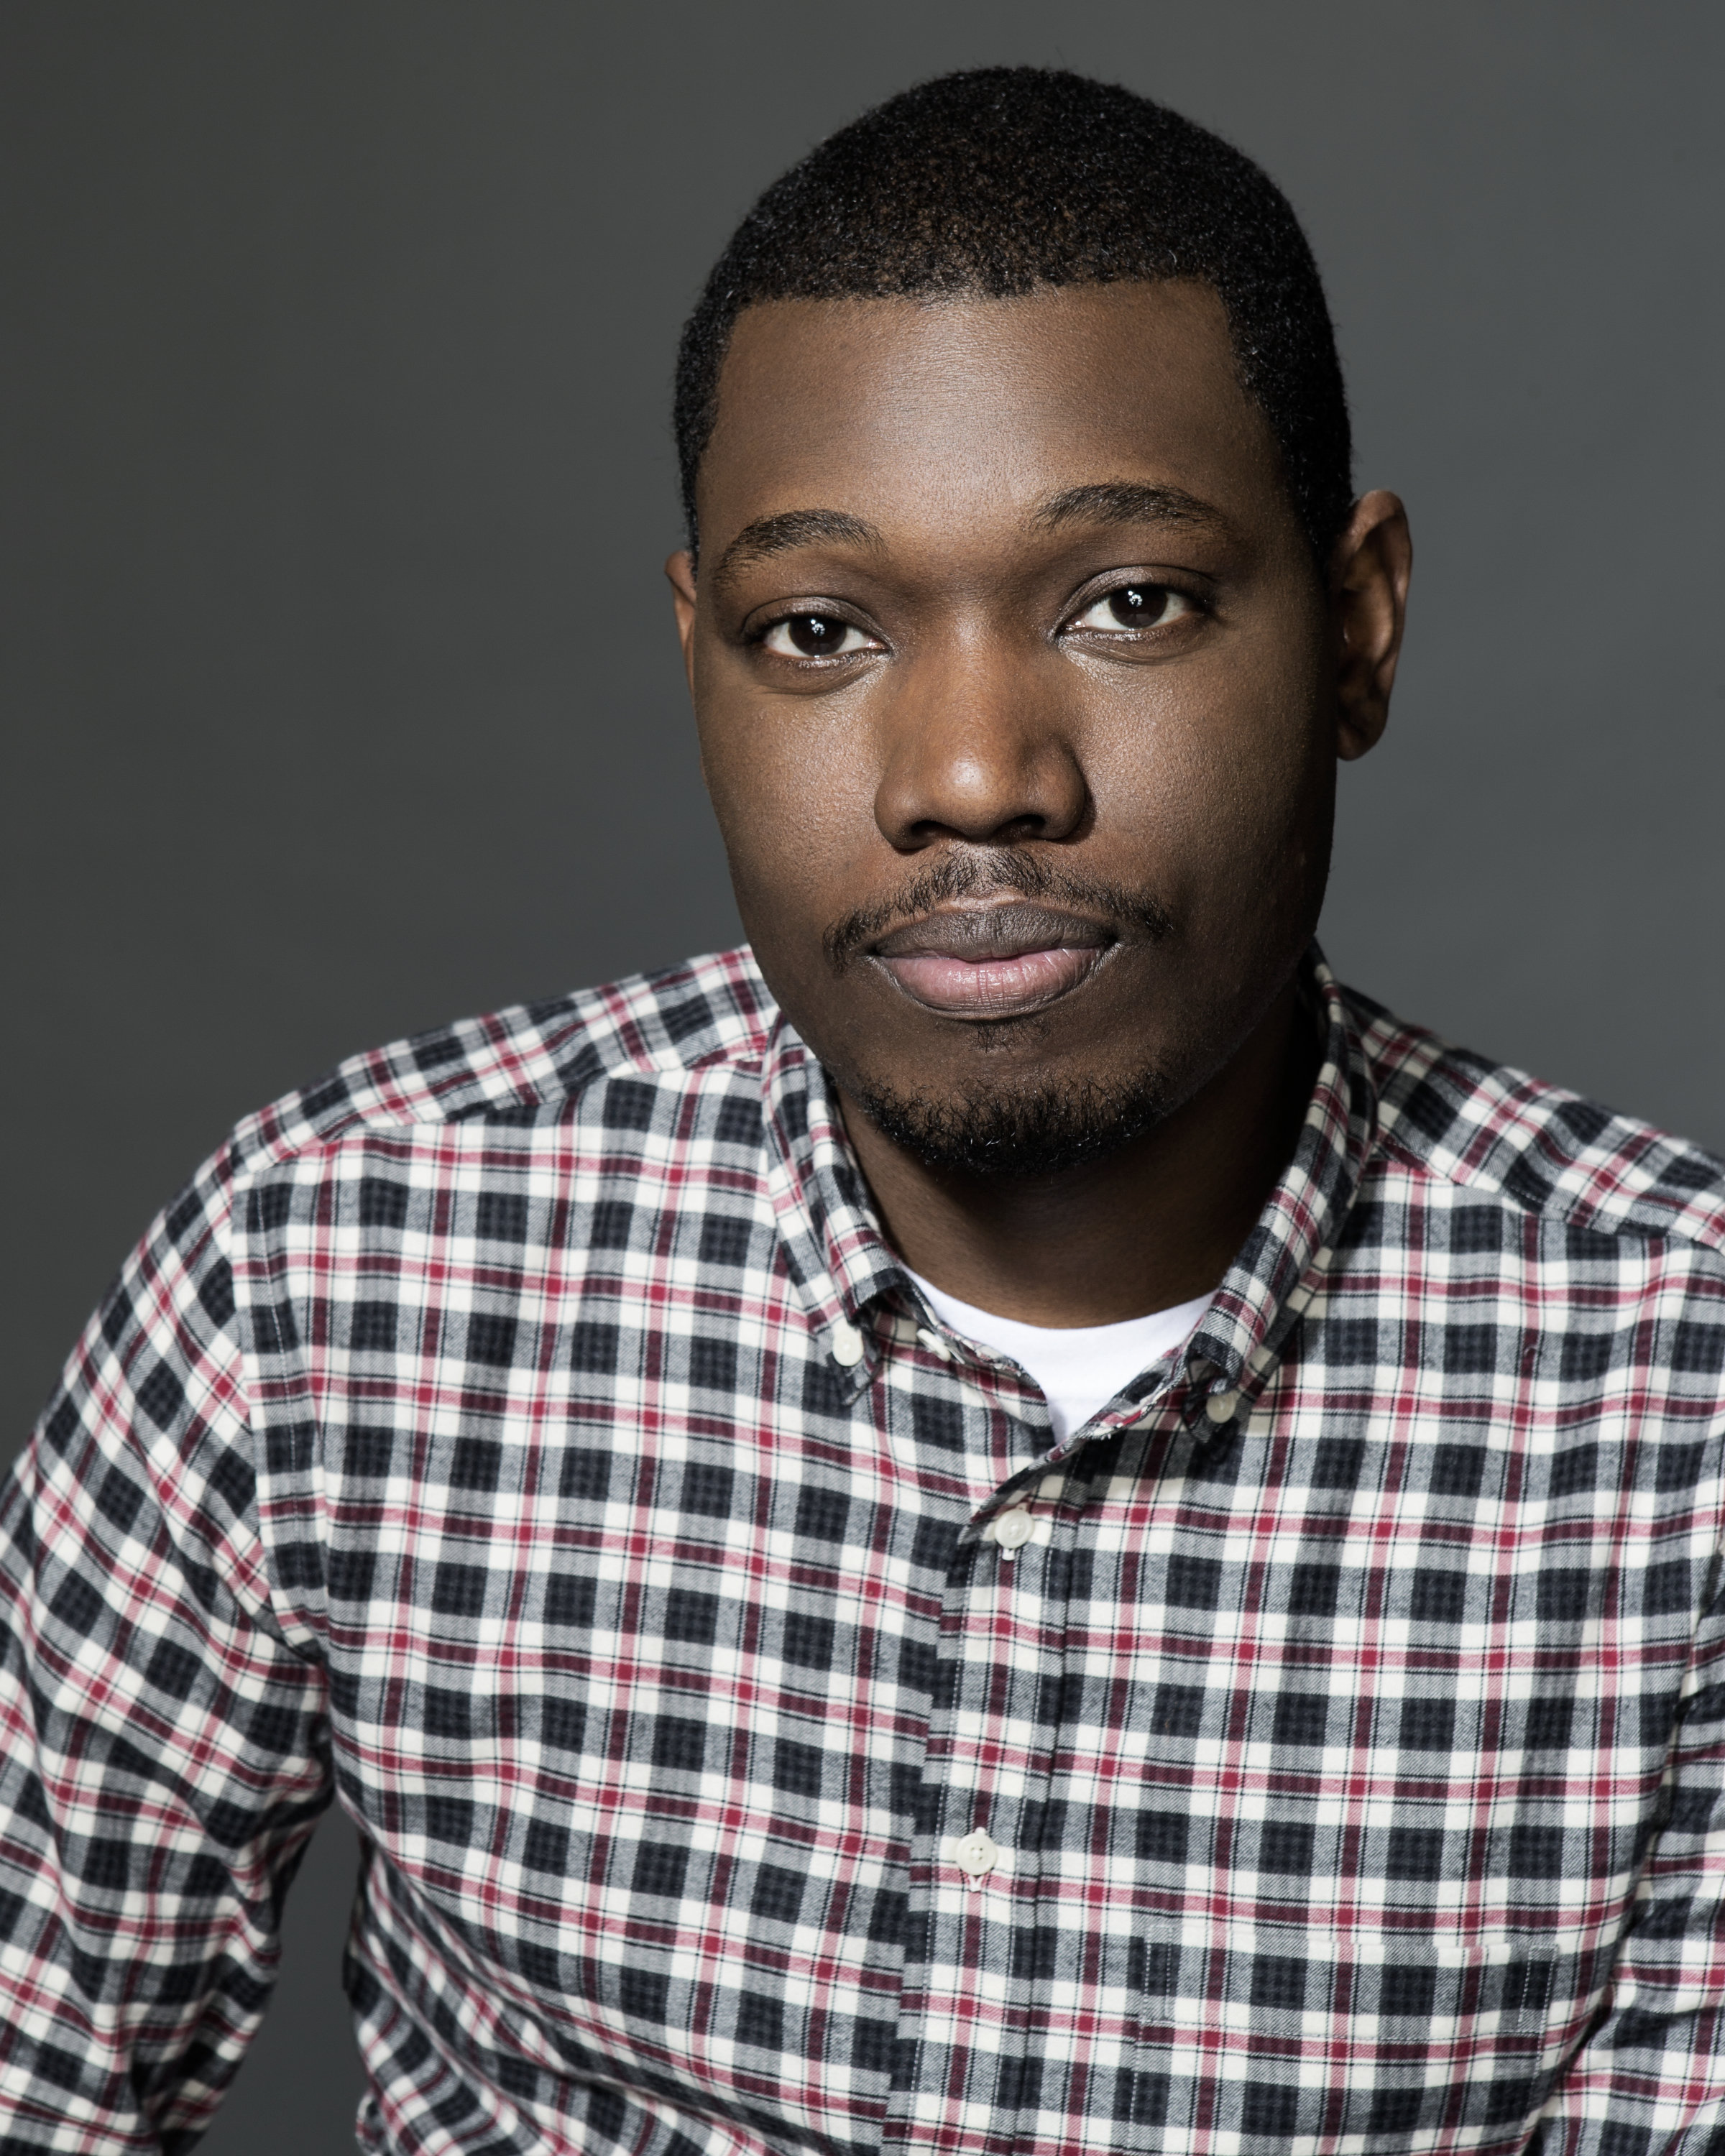 The 35-year old son of father Nathaniel Campbell and mother Rose Campbell, 187 cm tall Michael Che in 2018 photo